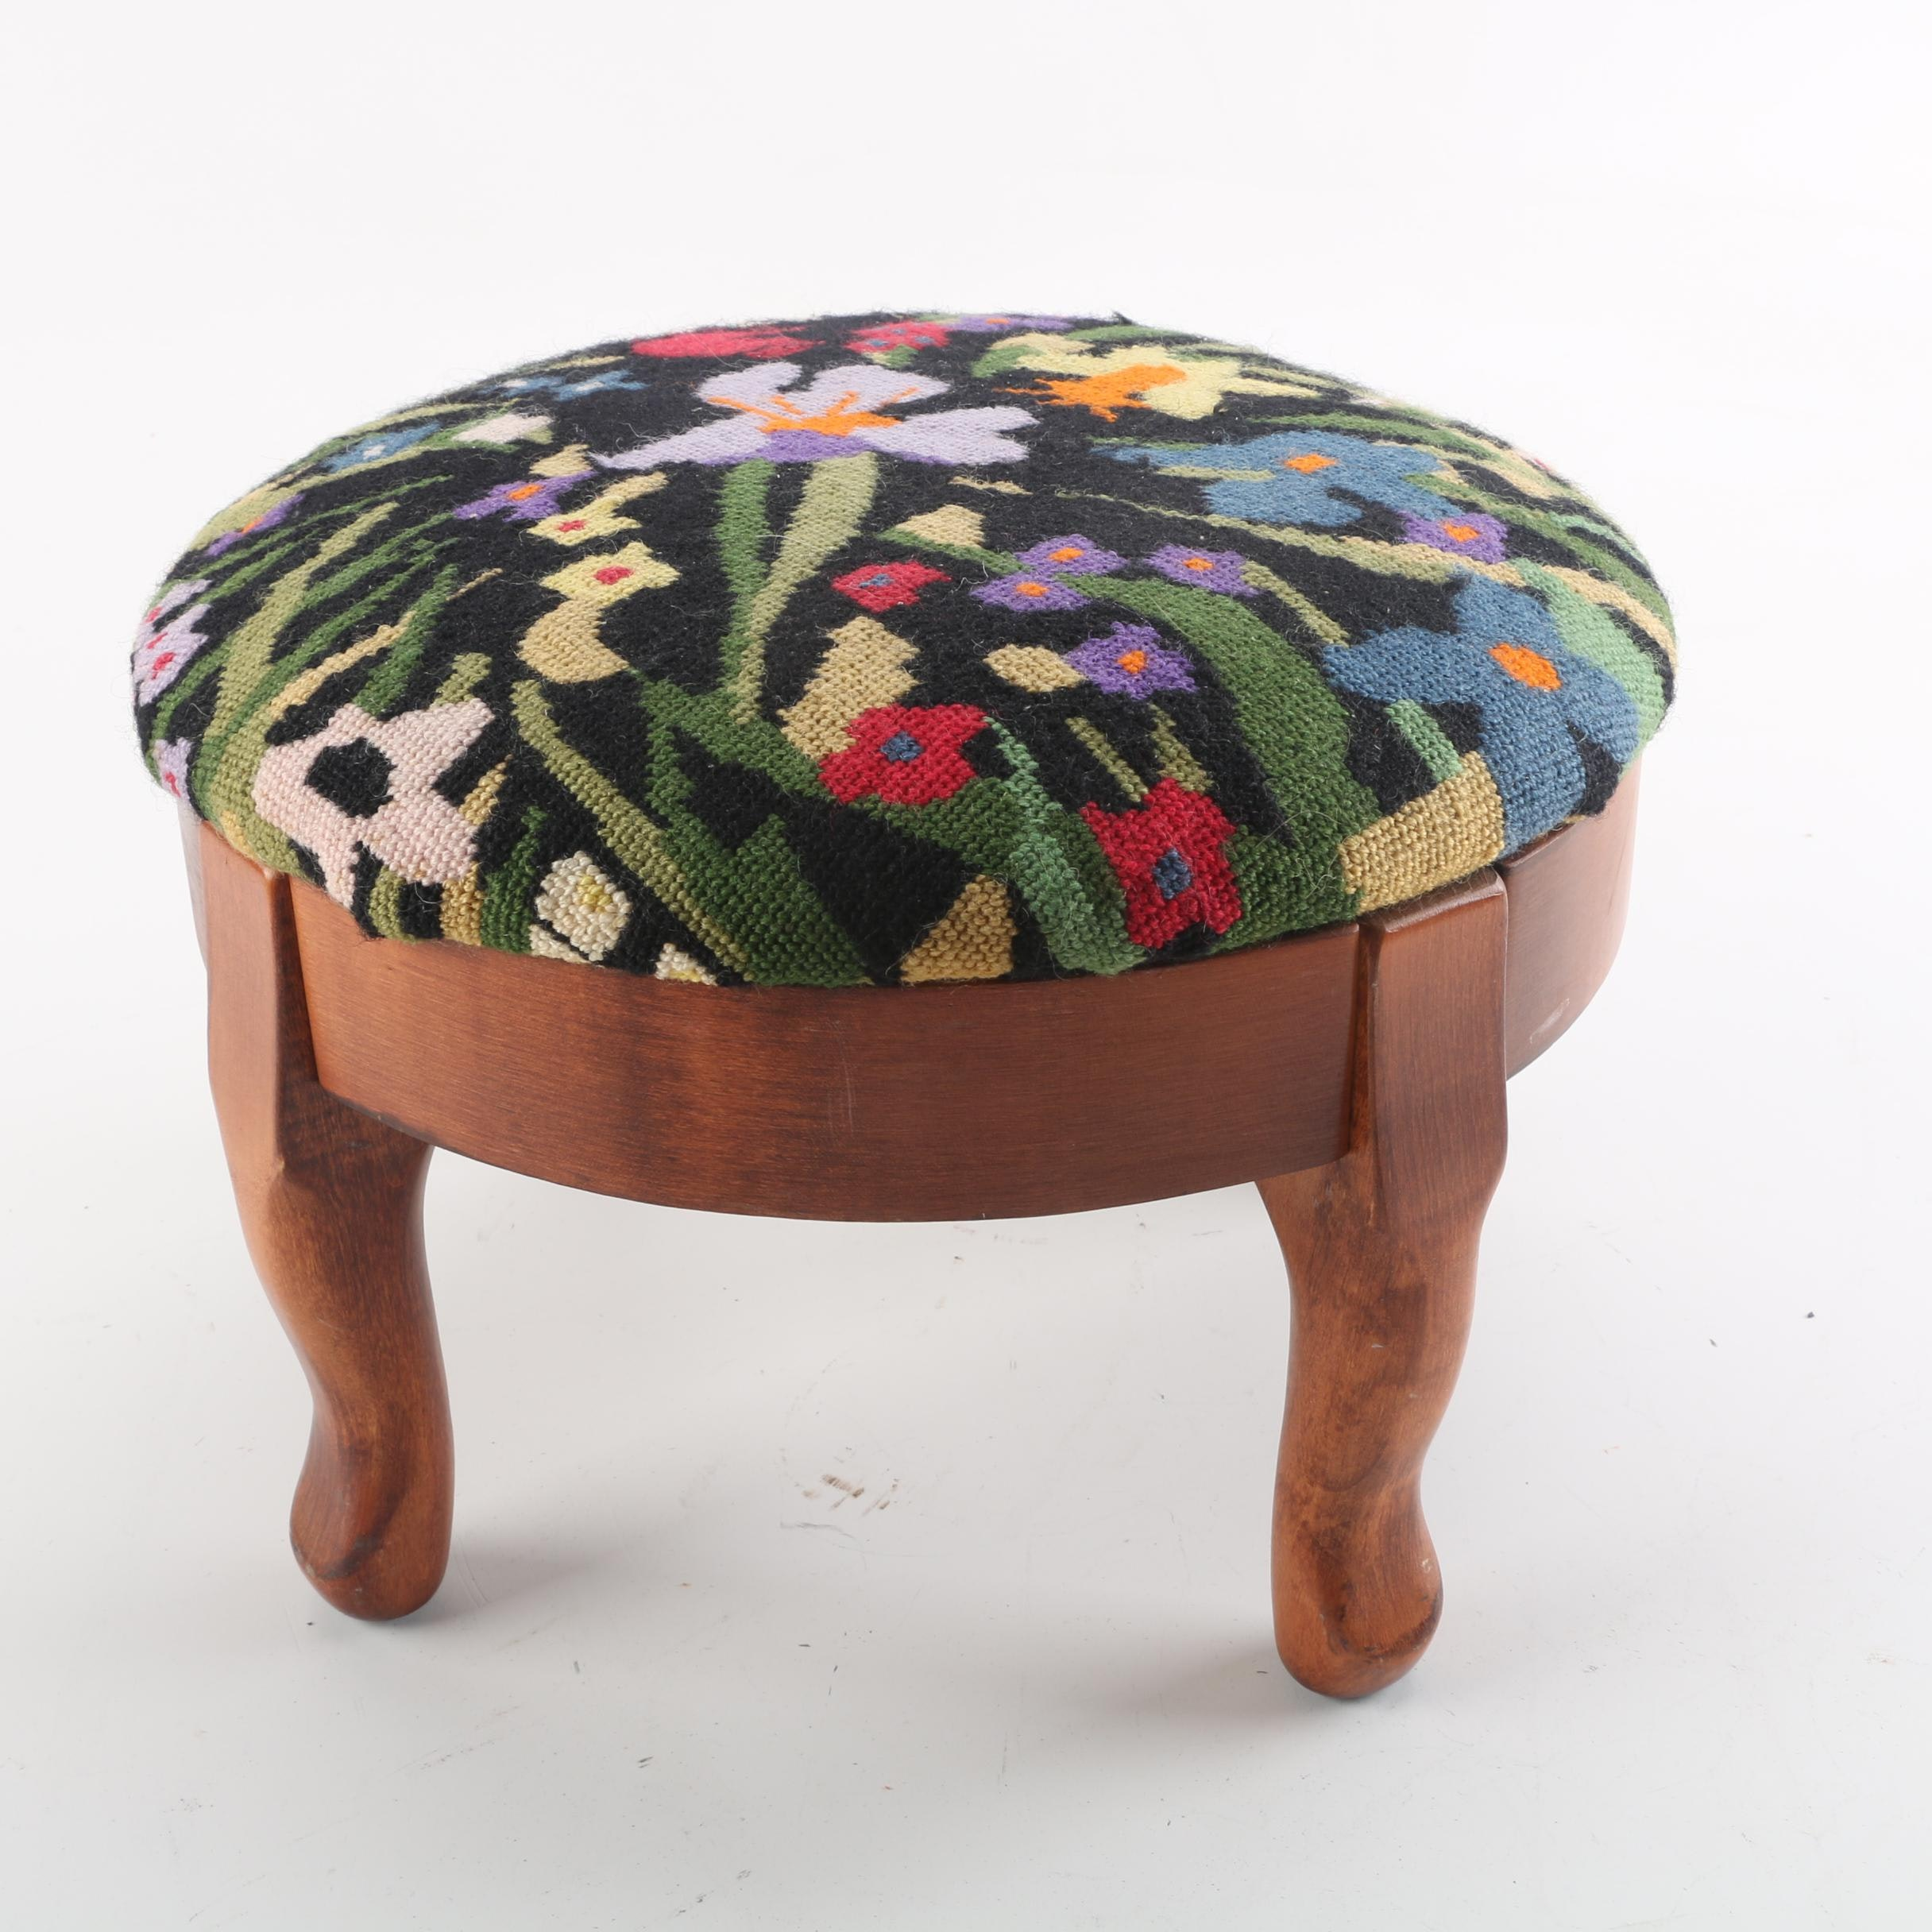 Paxton Products Needlepoint Footstool With Cotton Felt Upholstery